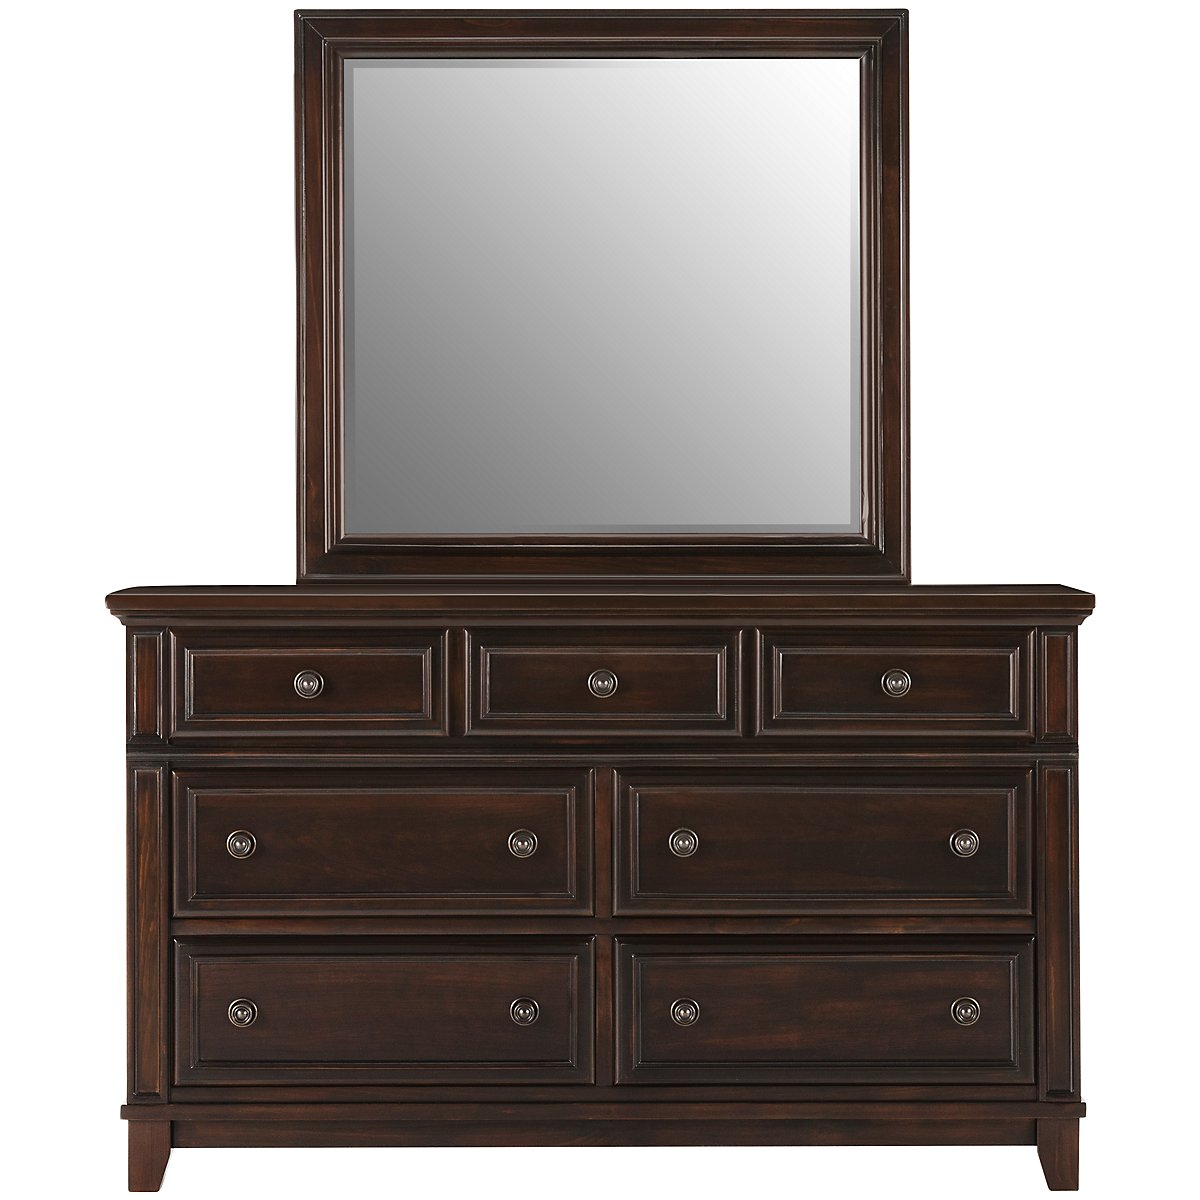 Mirror Bedroom Furniture City Furniture Bedroom Furniture Dressers Mirrors Chests